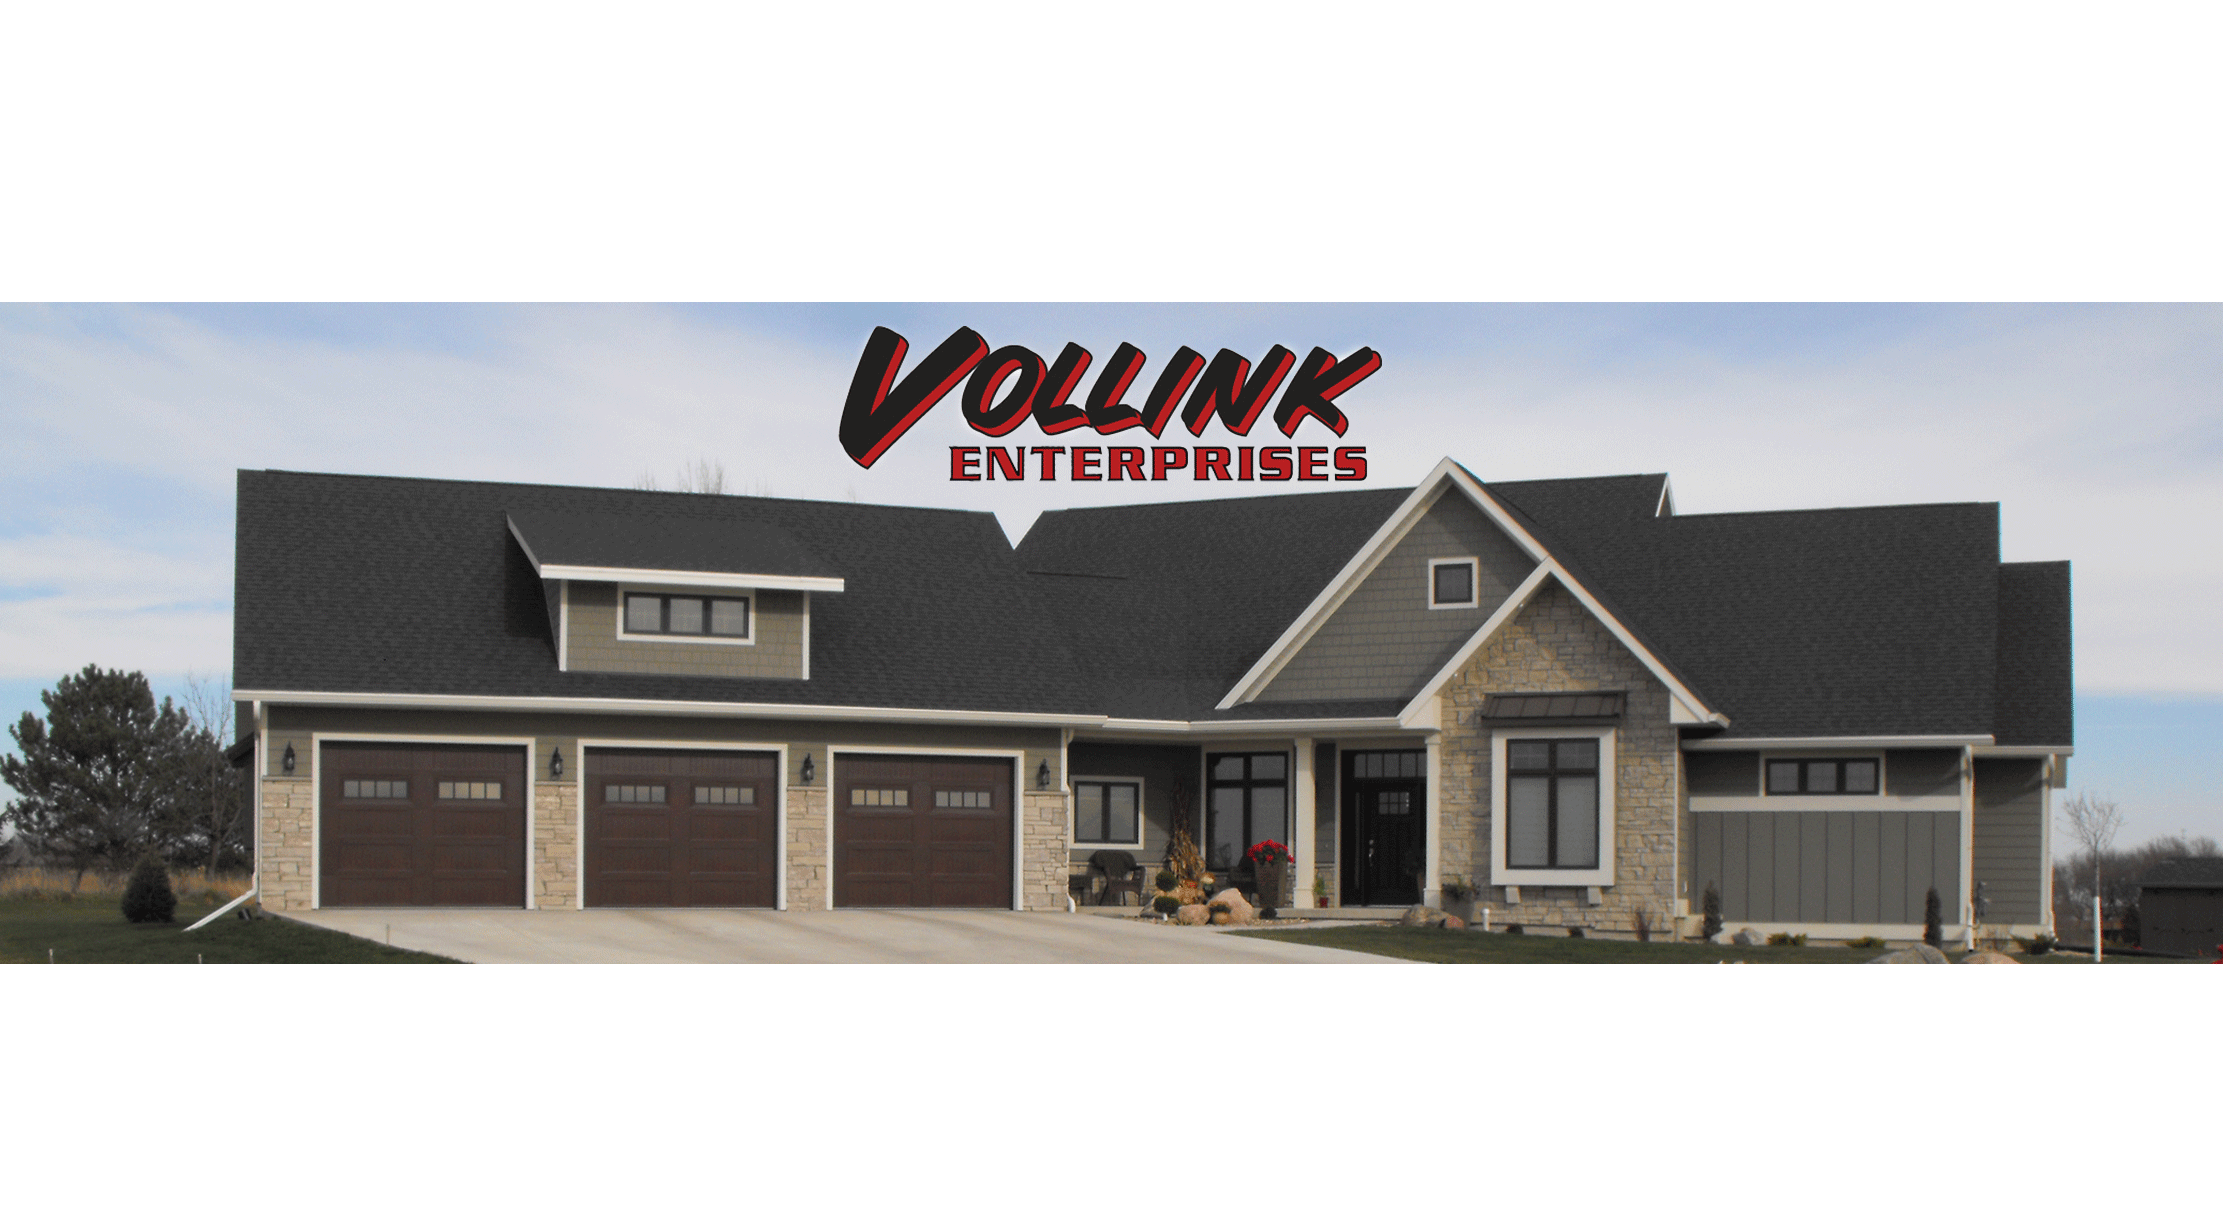 Vollink Construction